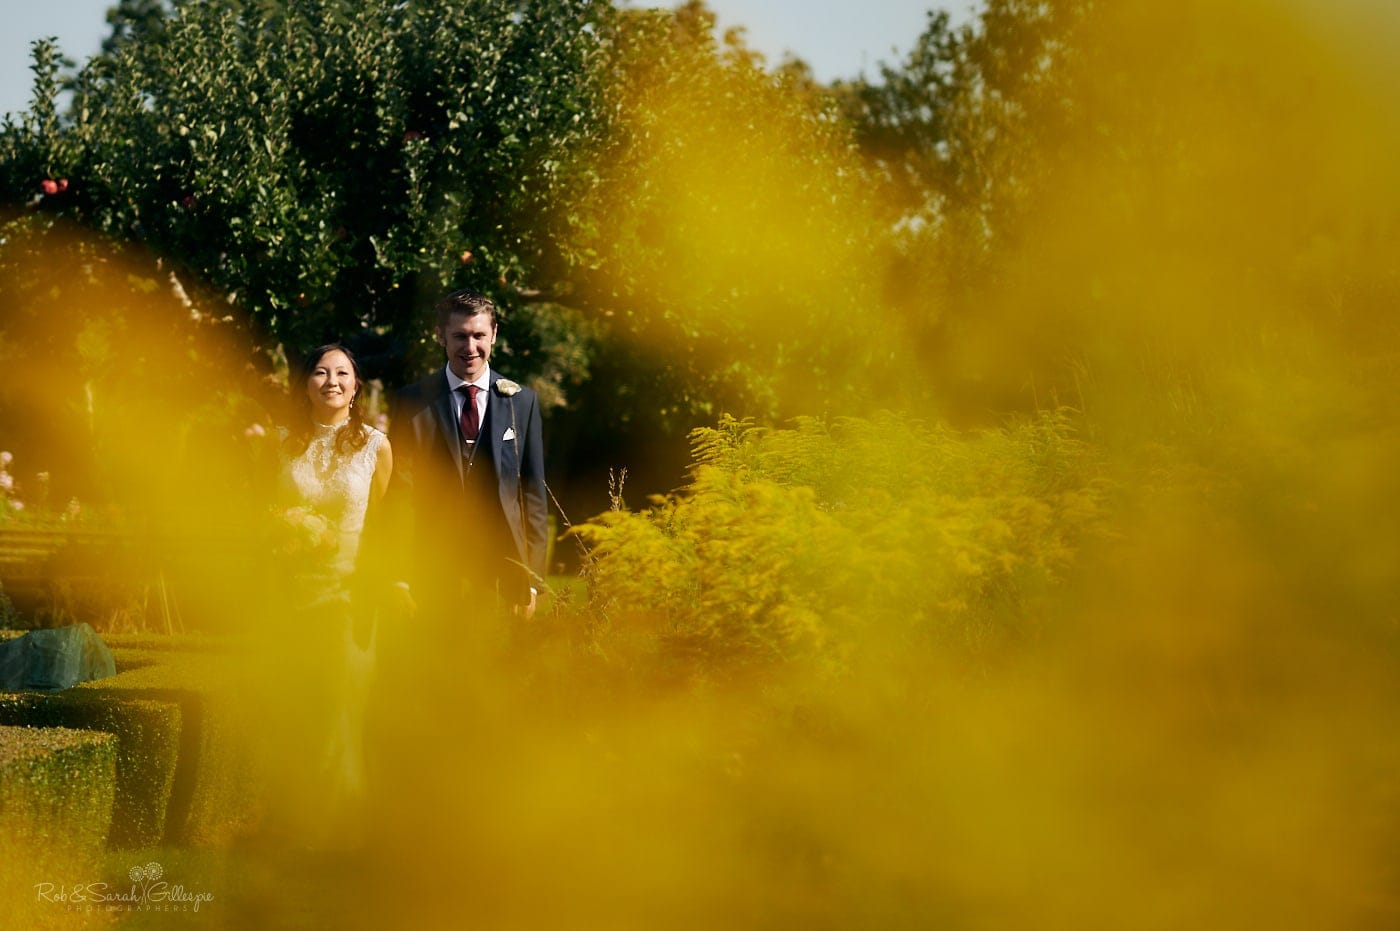 Newly married couple walk through gardens at Mallory Court on bright sunny day